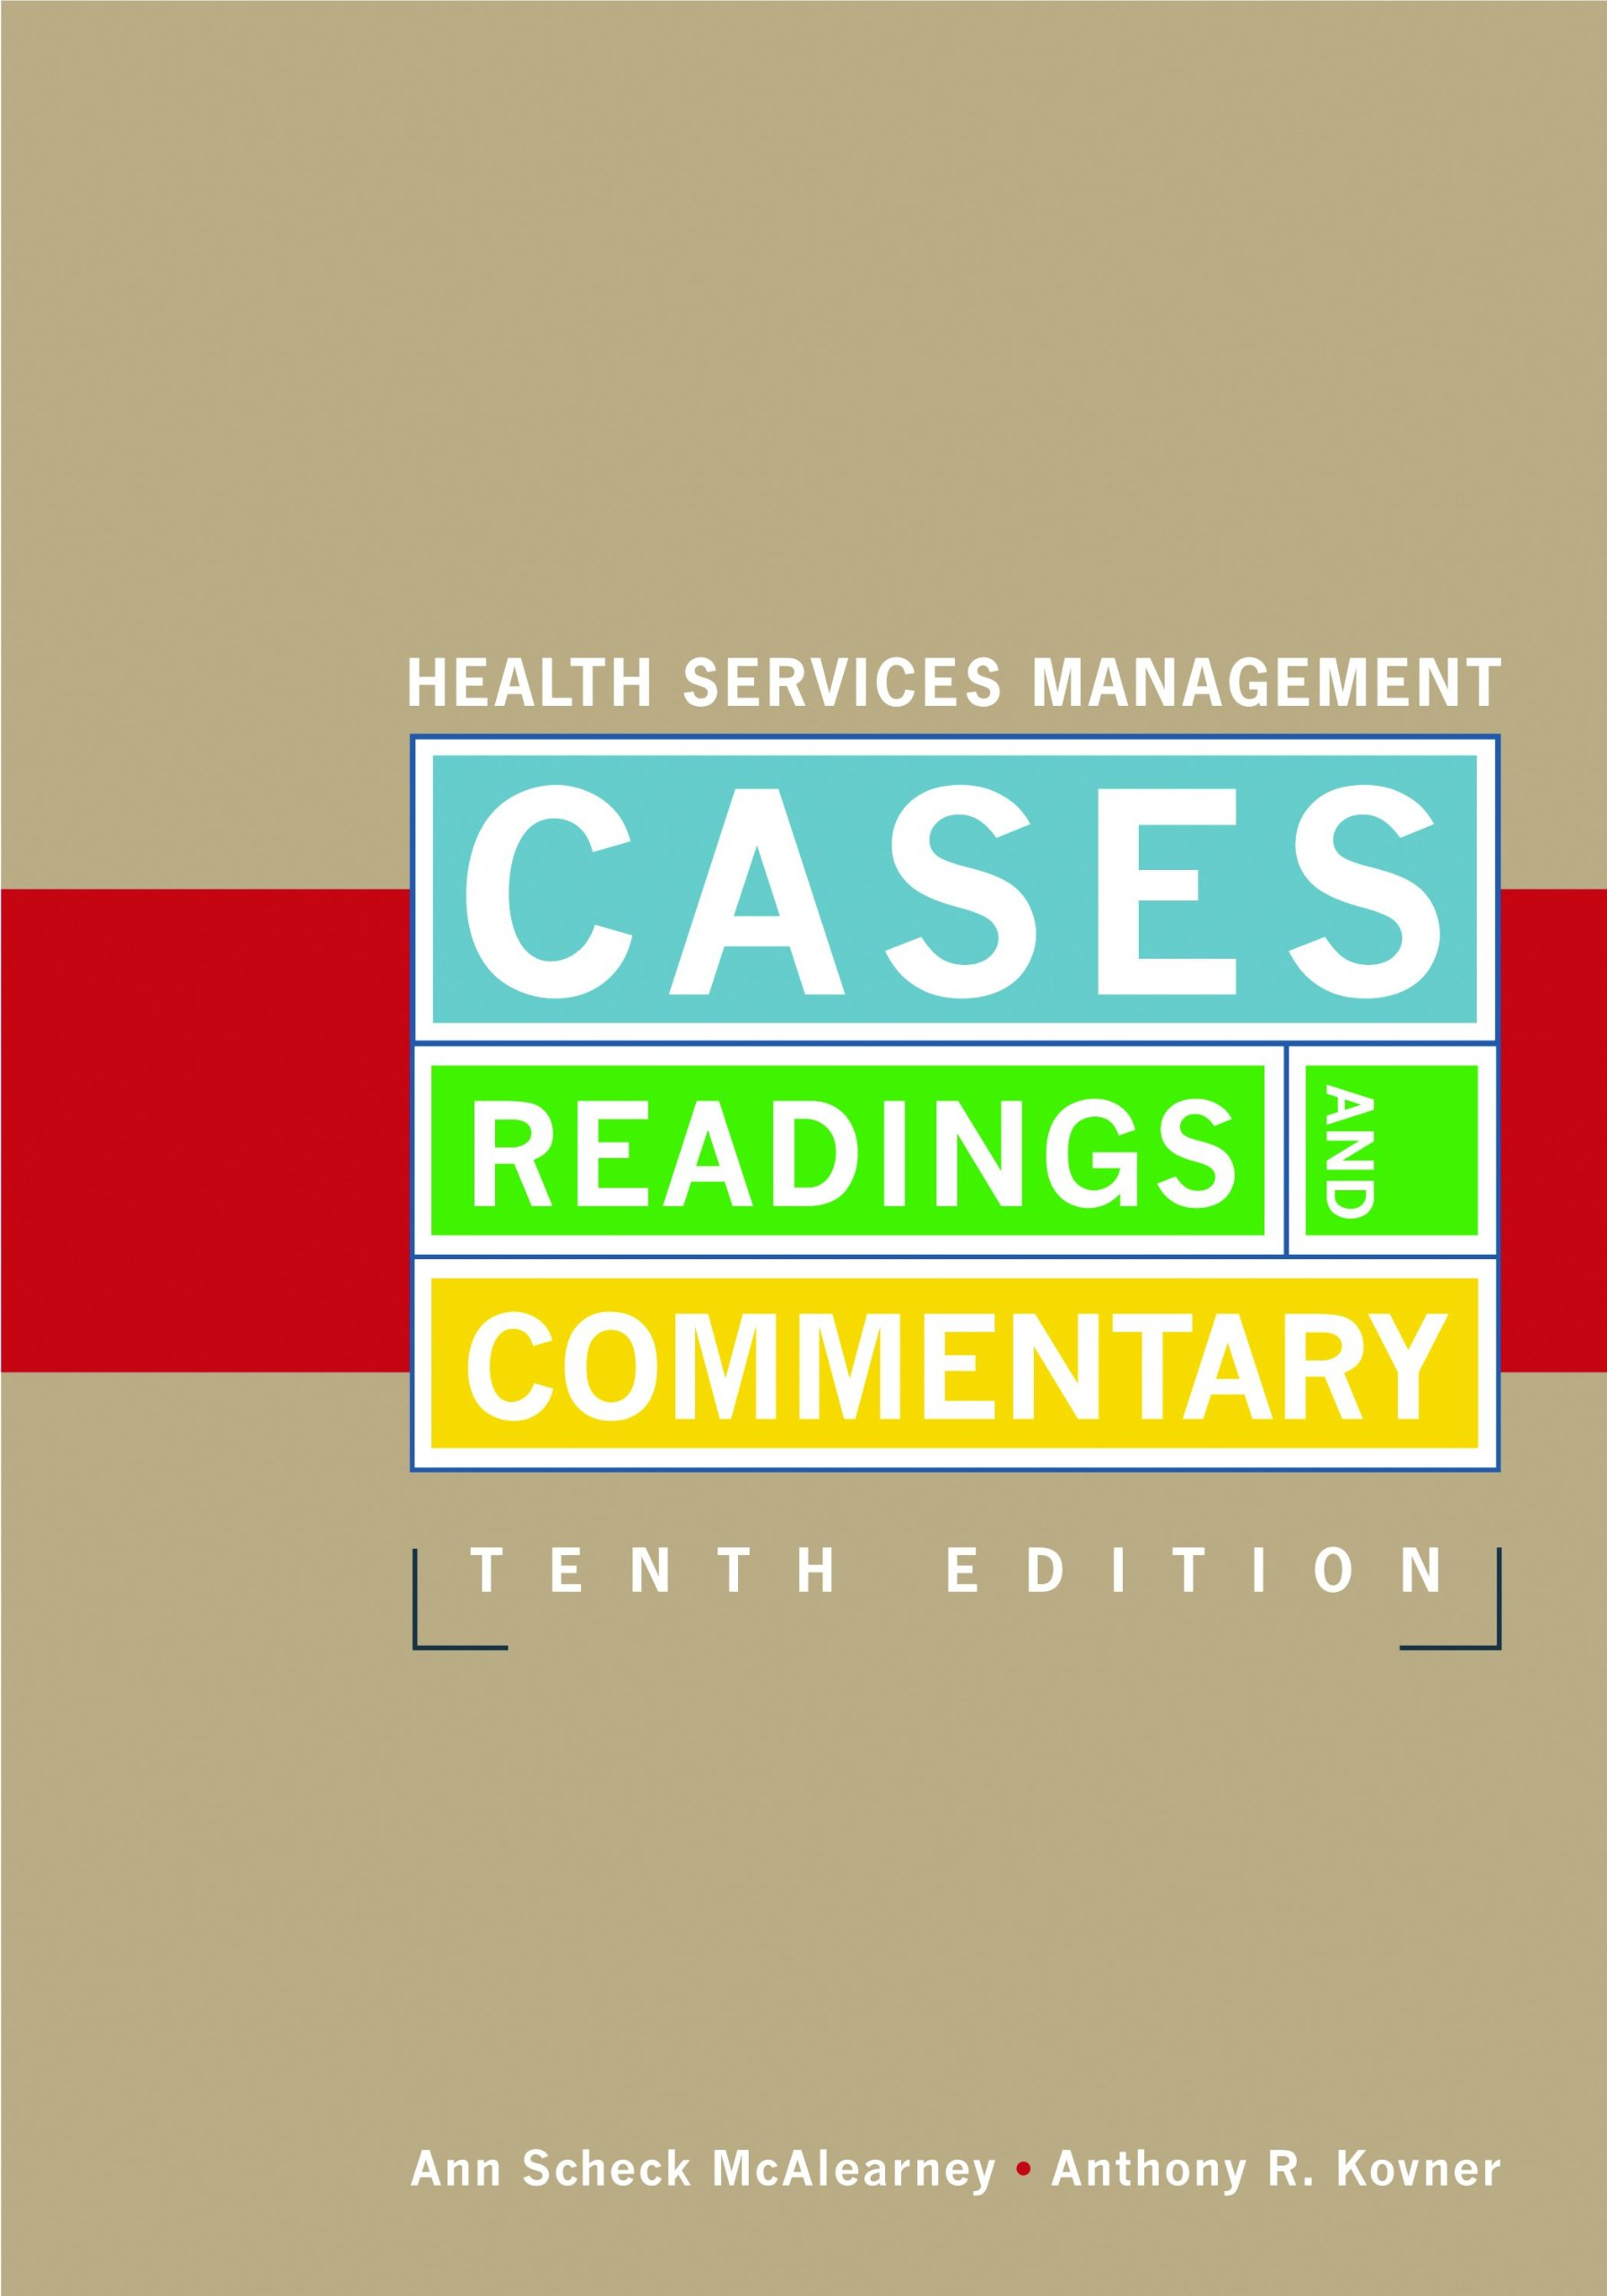 Health Services Management: Cases, Readings, and Commentary, Tenth Edition by Brand: Health Administration Pr